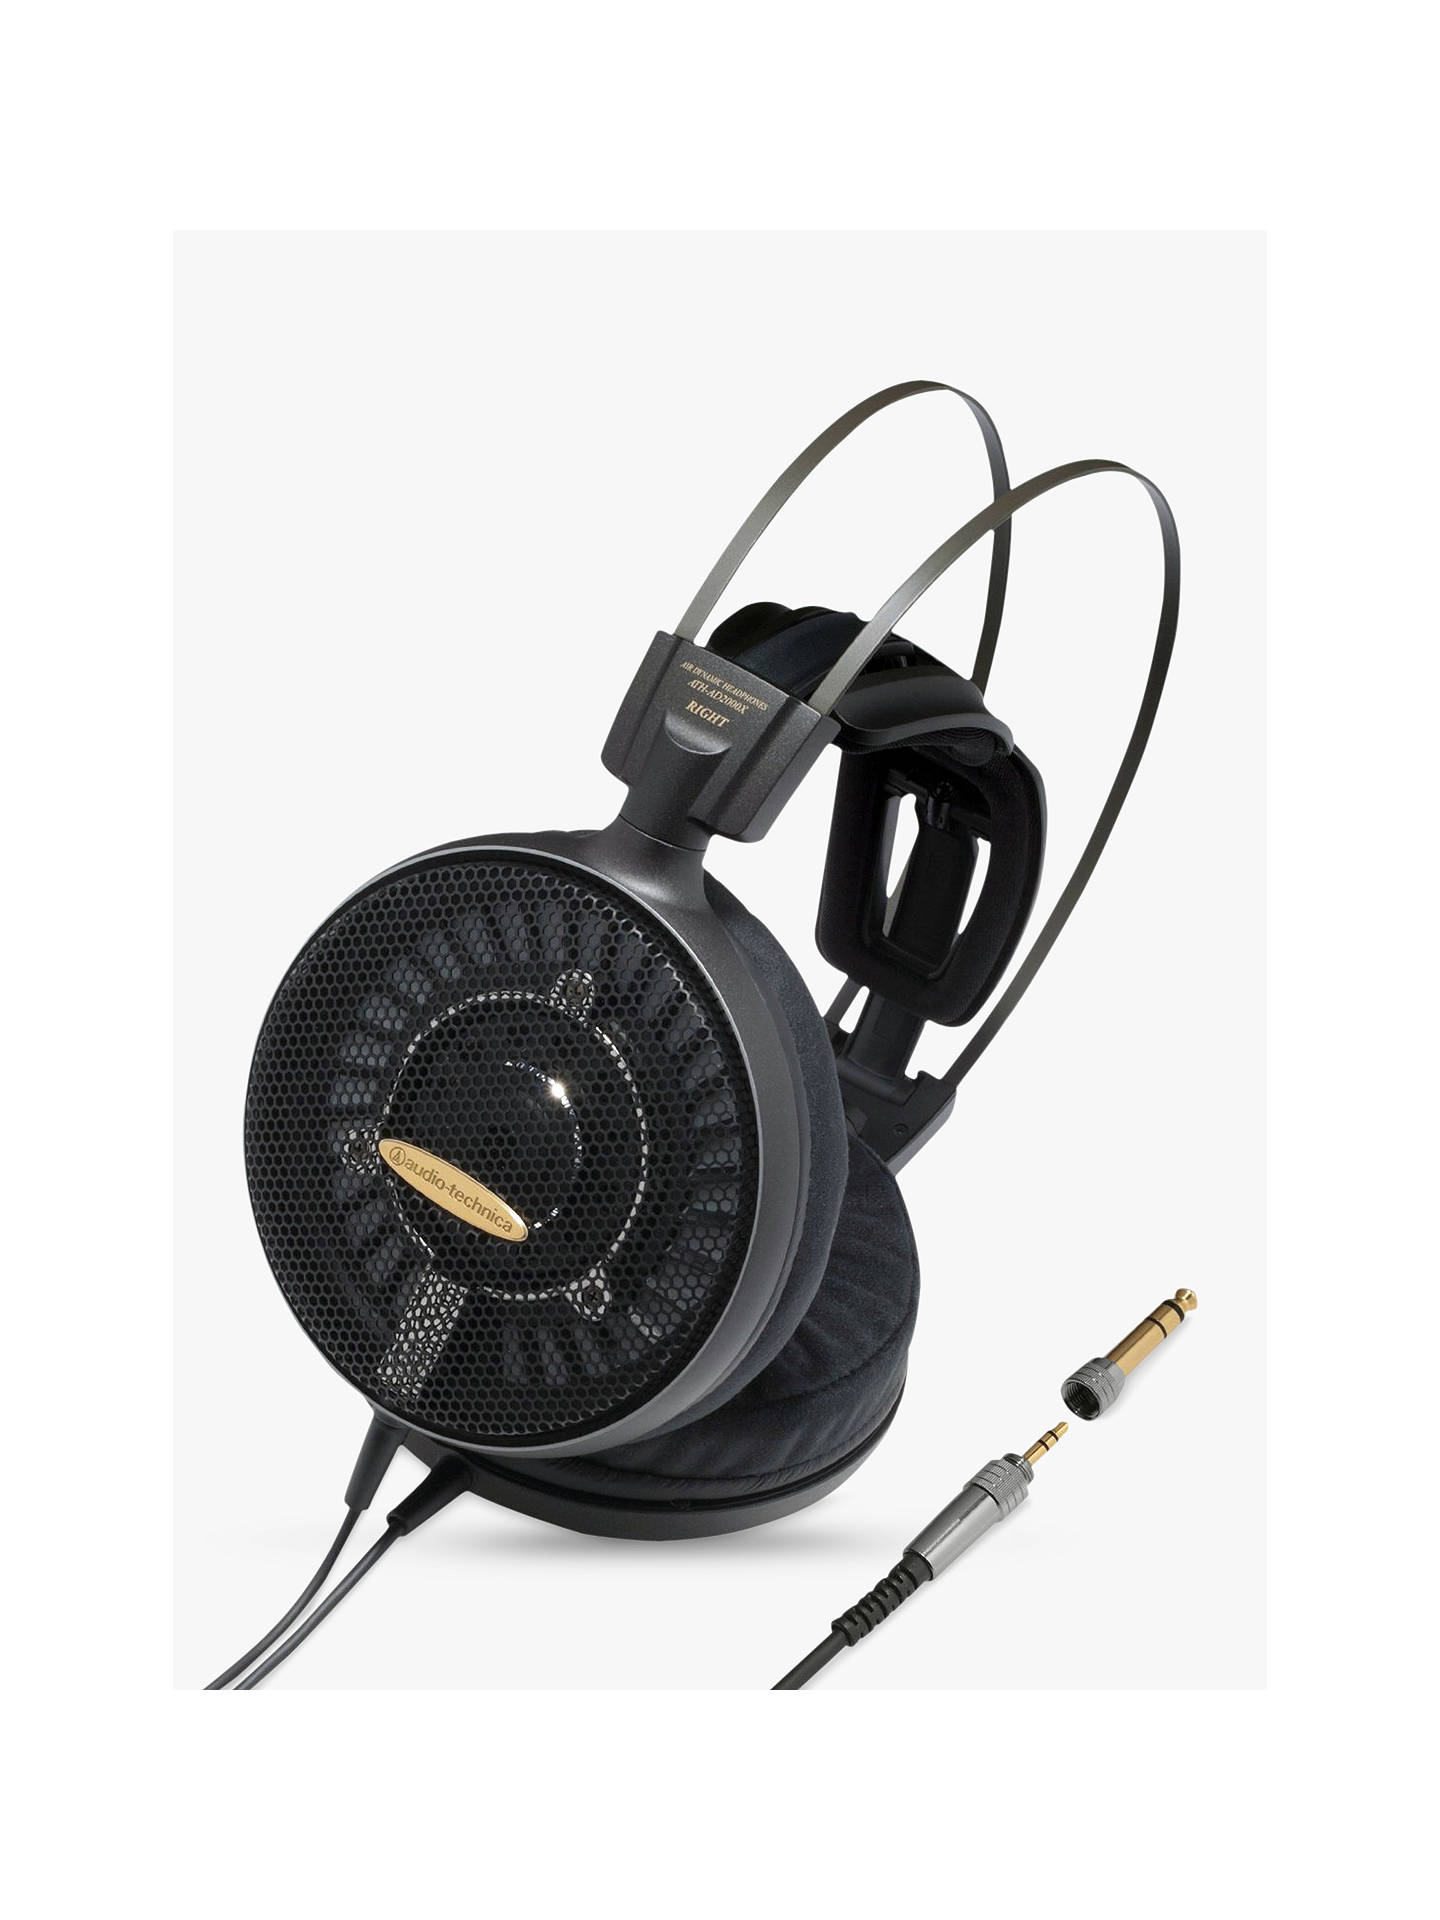 BuyAudio-Technica ATH-AD2000X Audiophile Oper-Air Over-Ear Dynamic Headphones With High-Resolution Audio Online at johnlewis.com